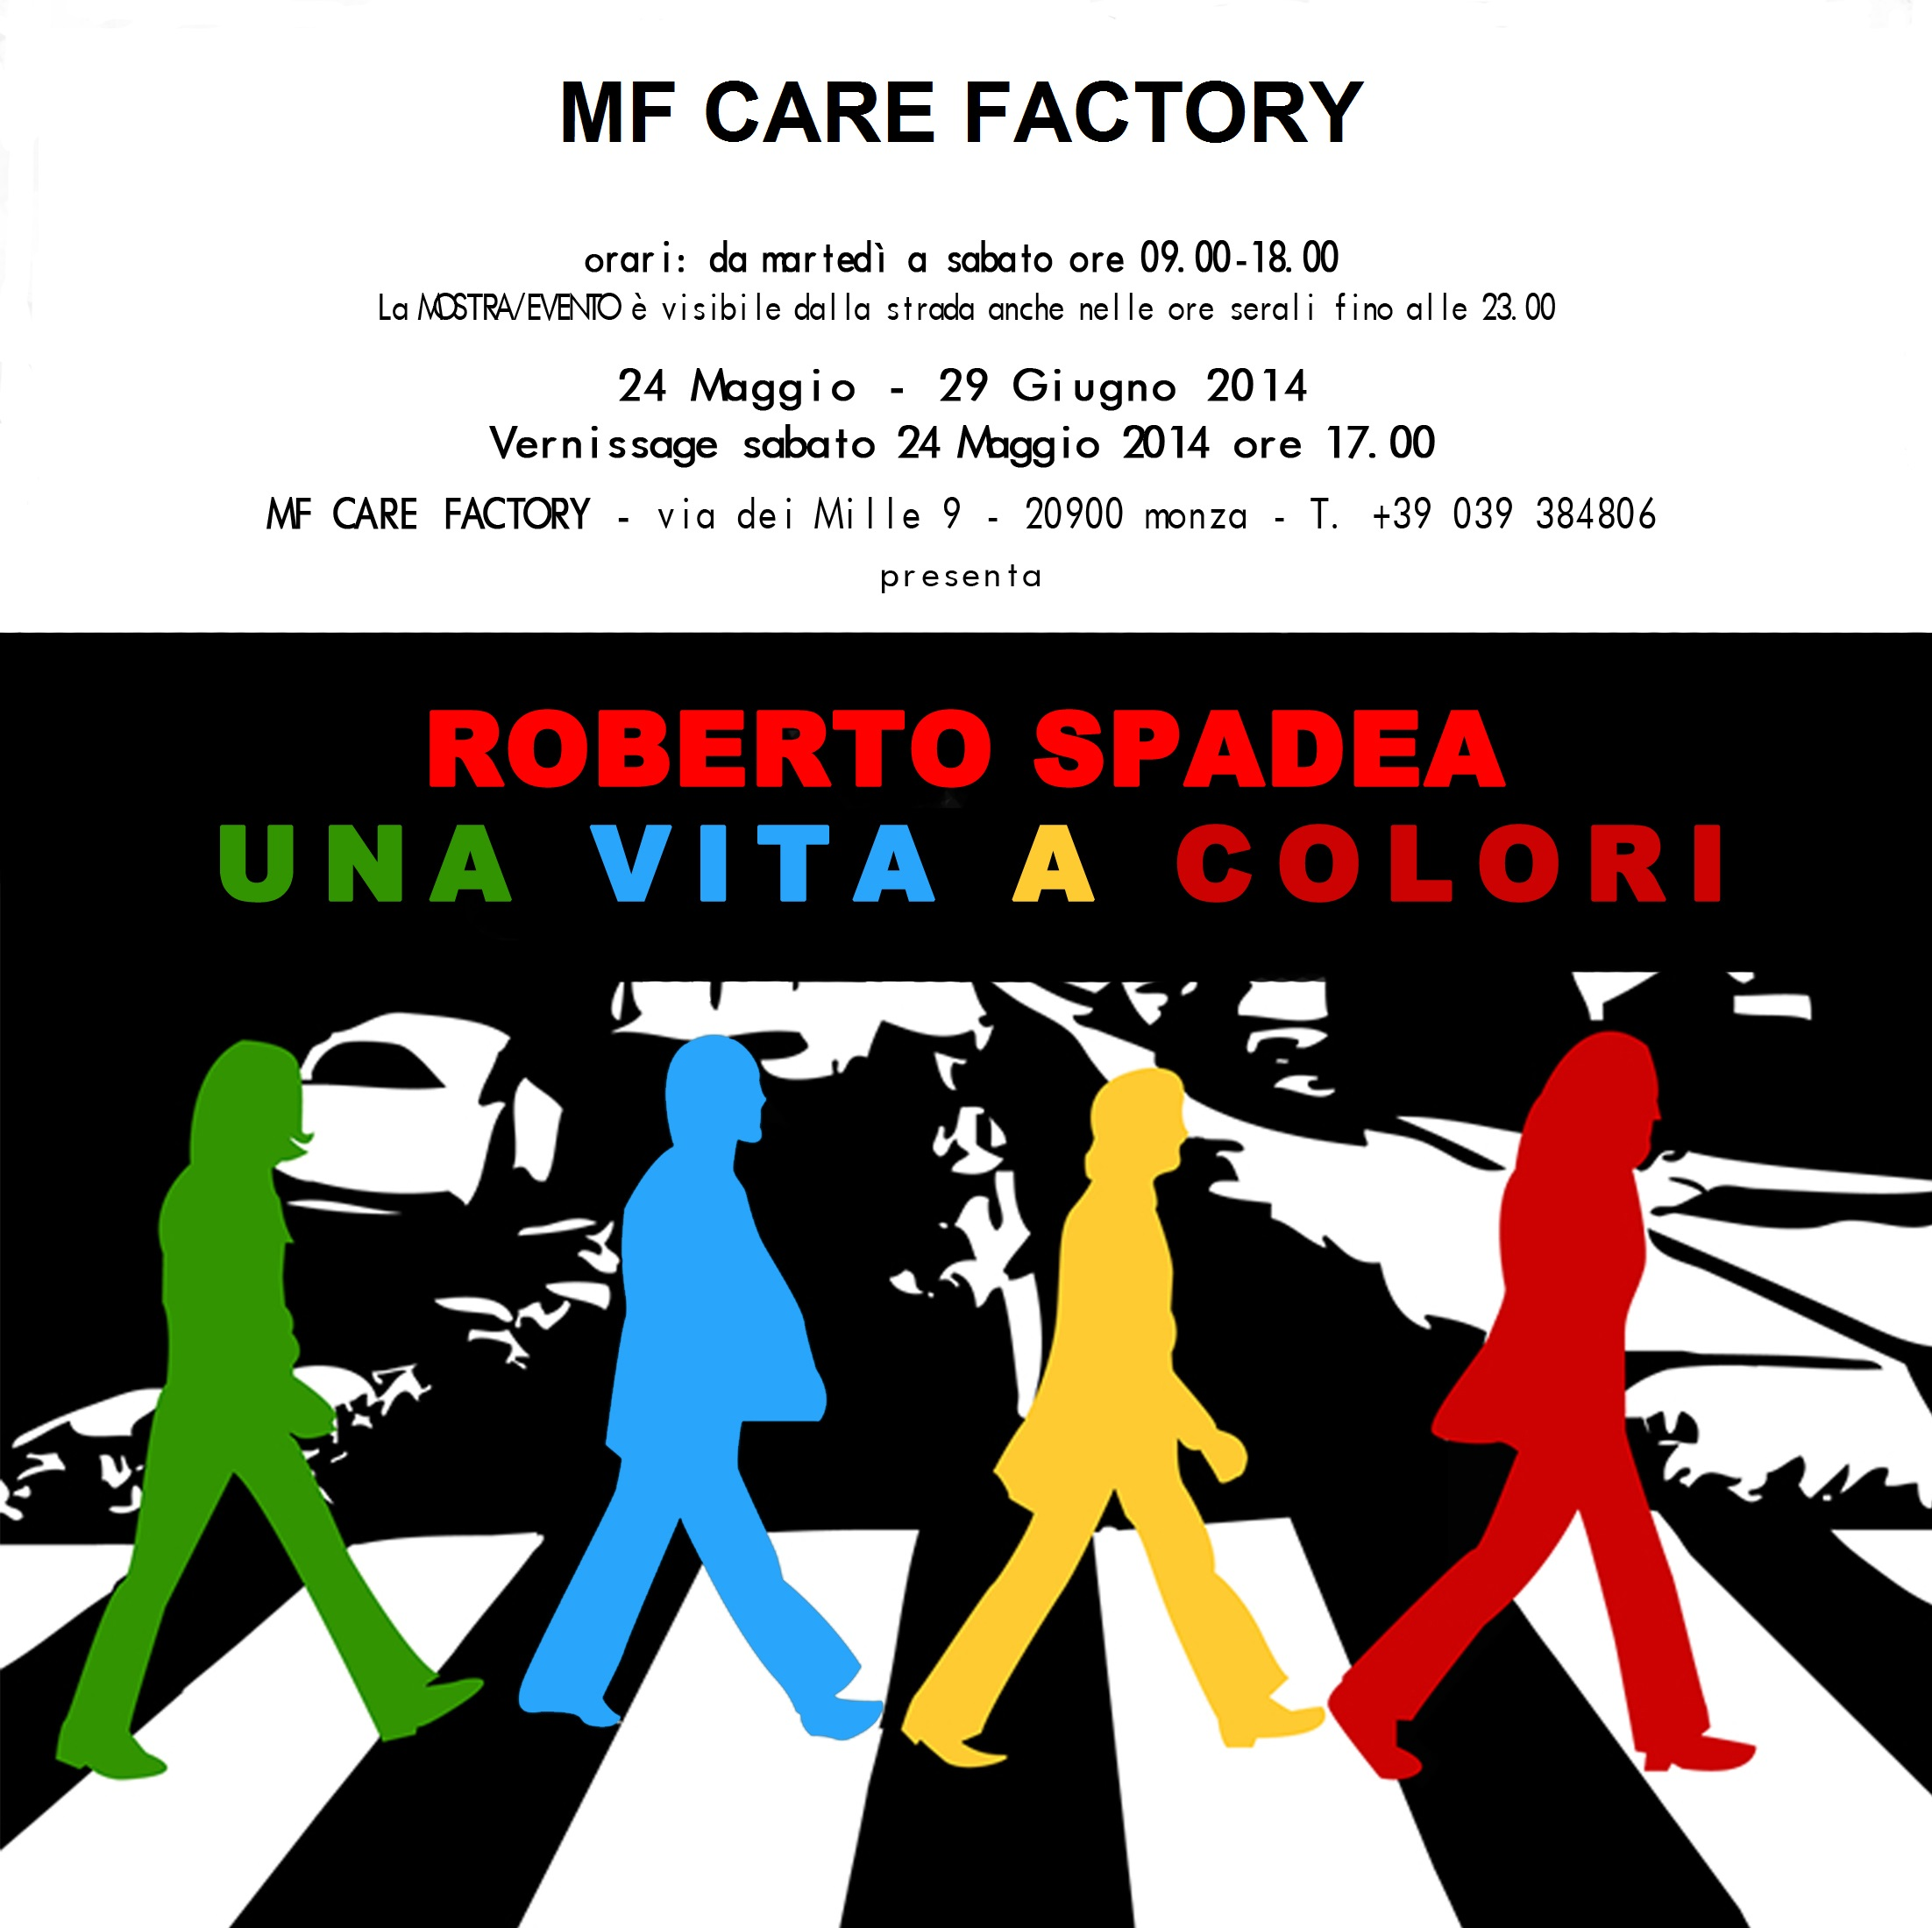 Mf Care Factory